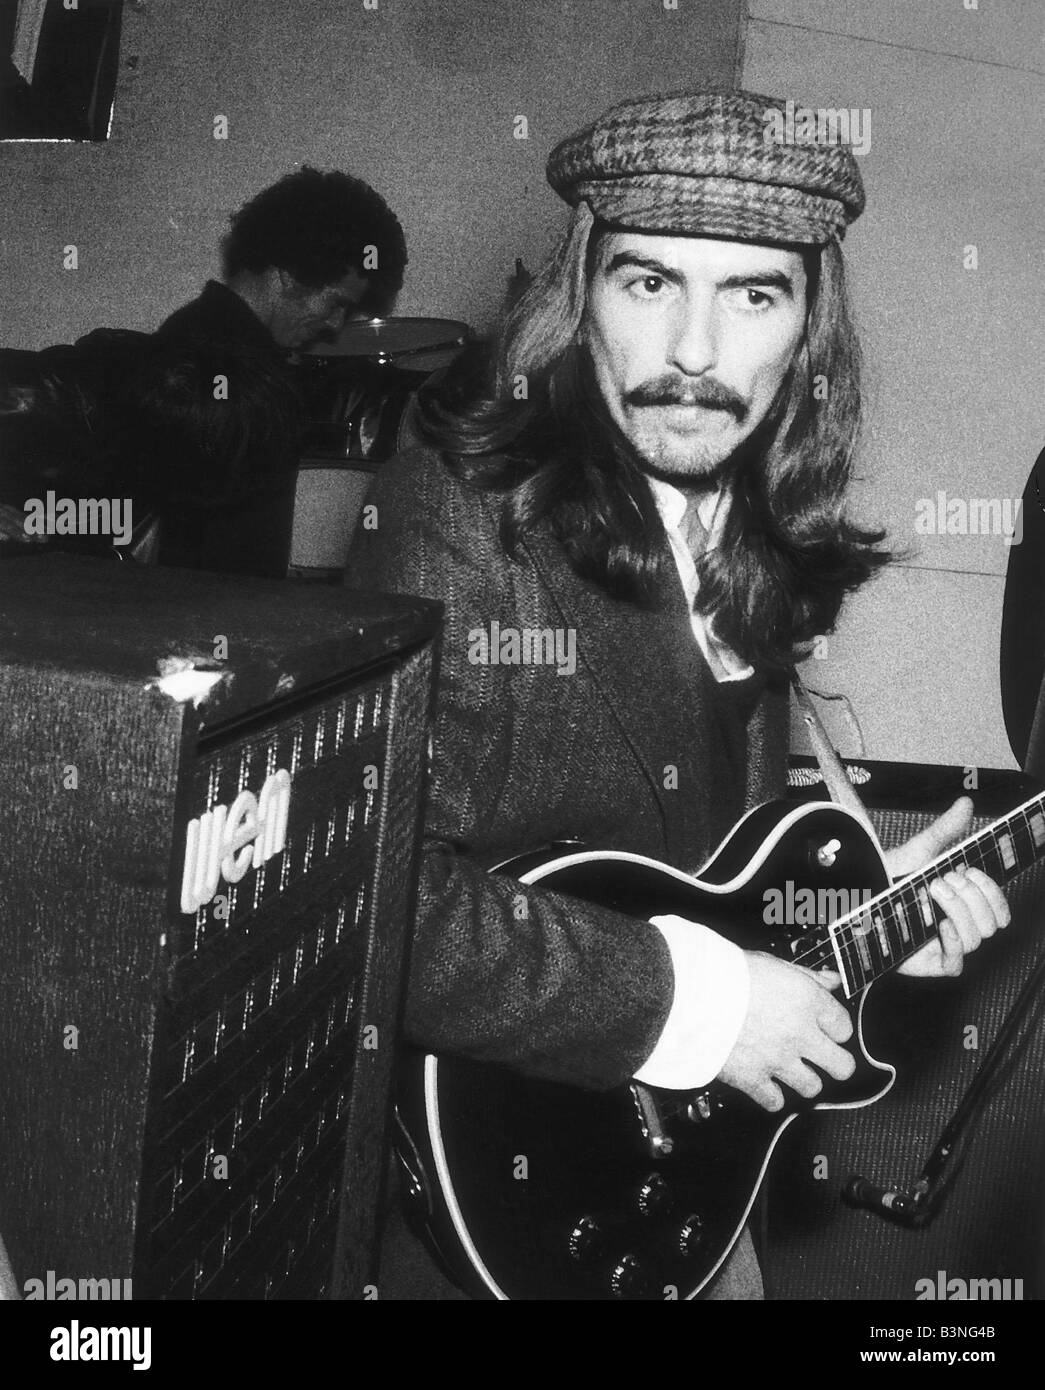 George Harrison Singer with the Beatles Pop Group December 1969 - Stock Image